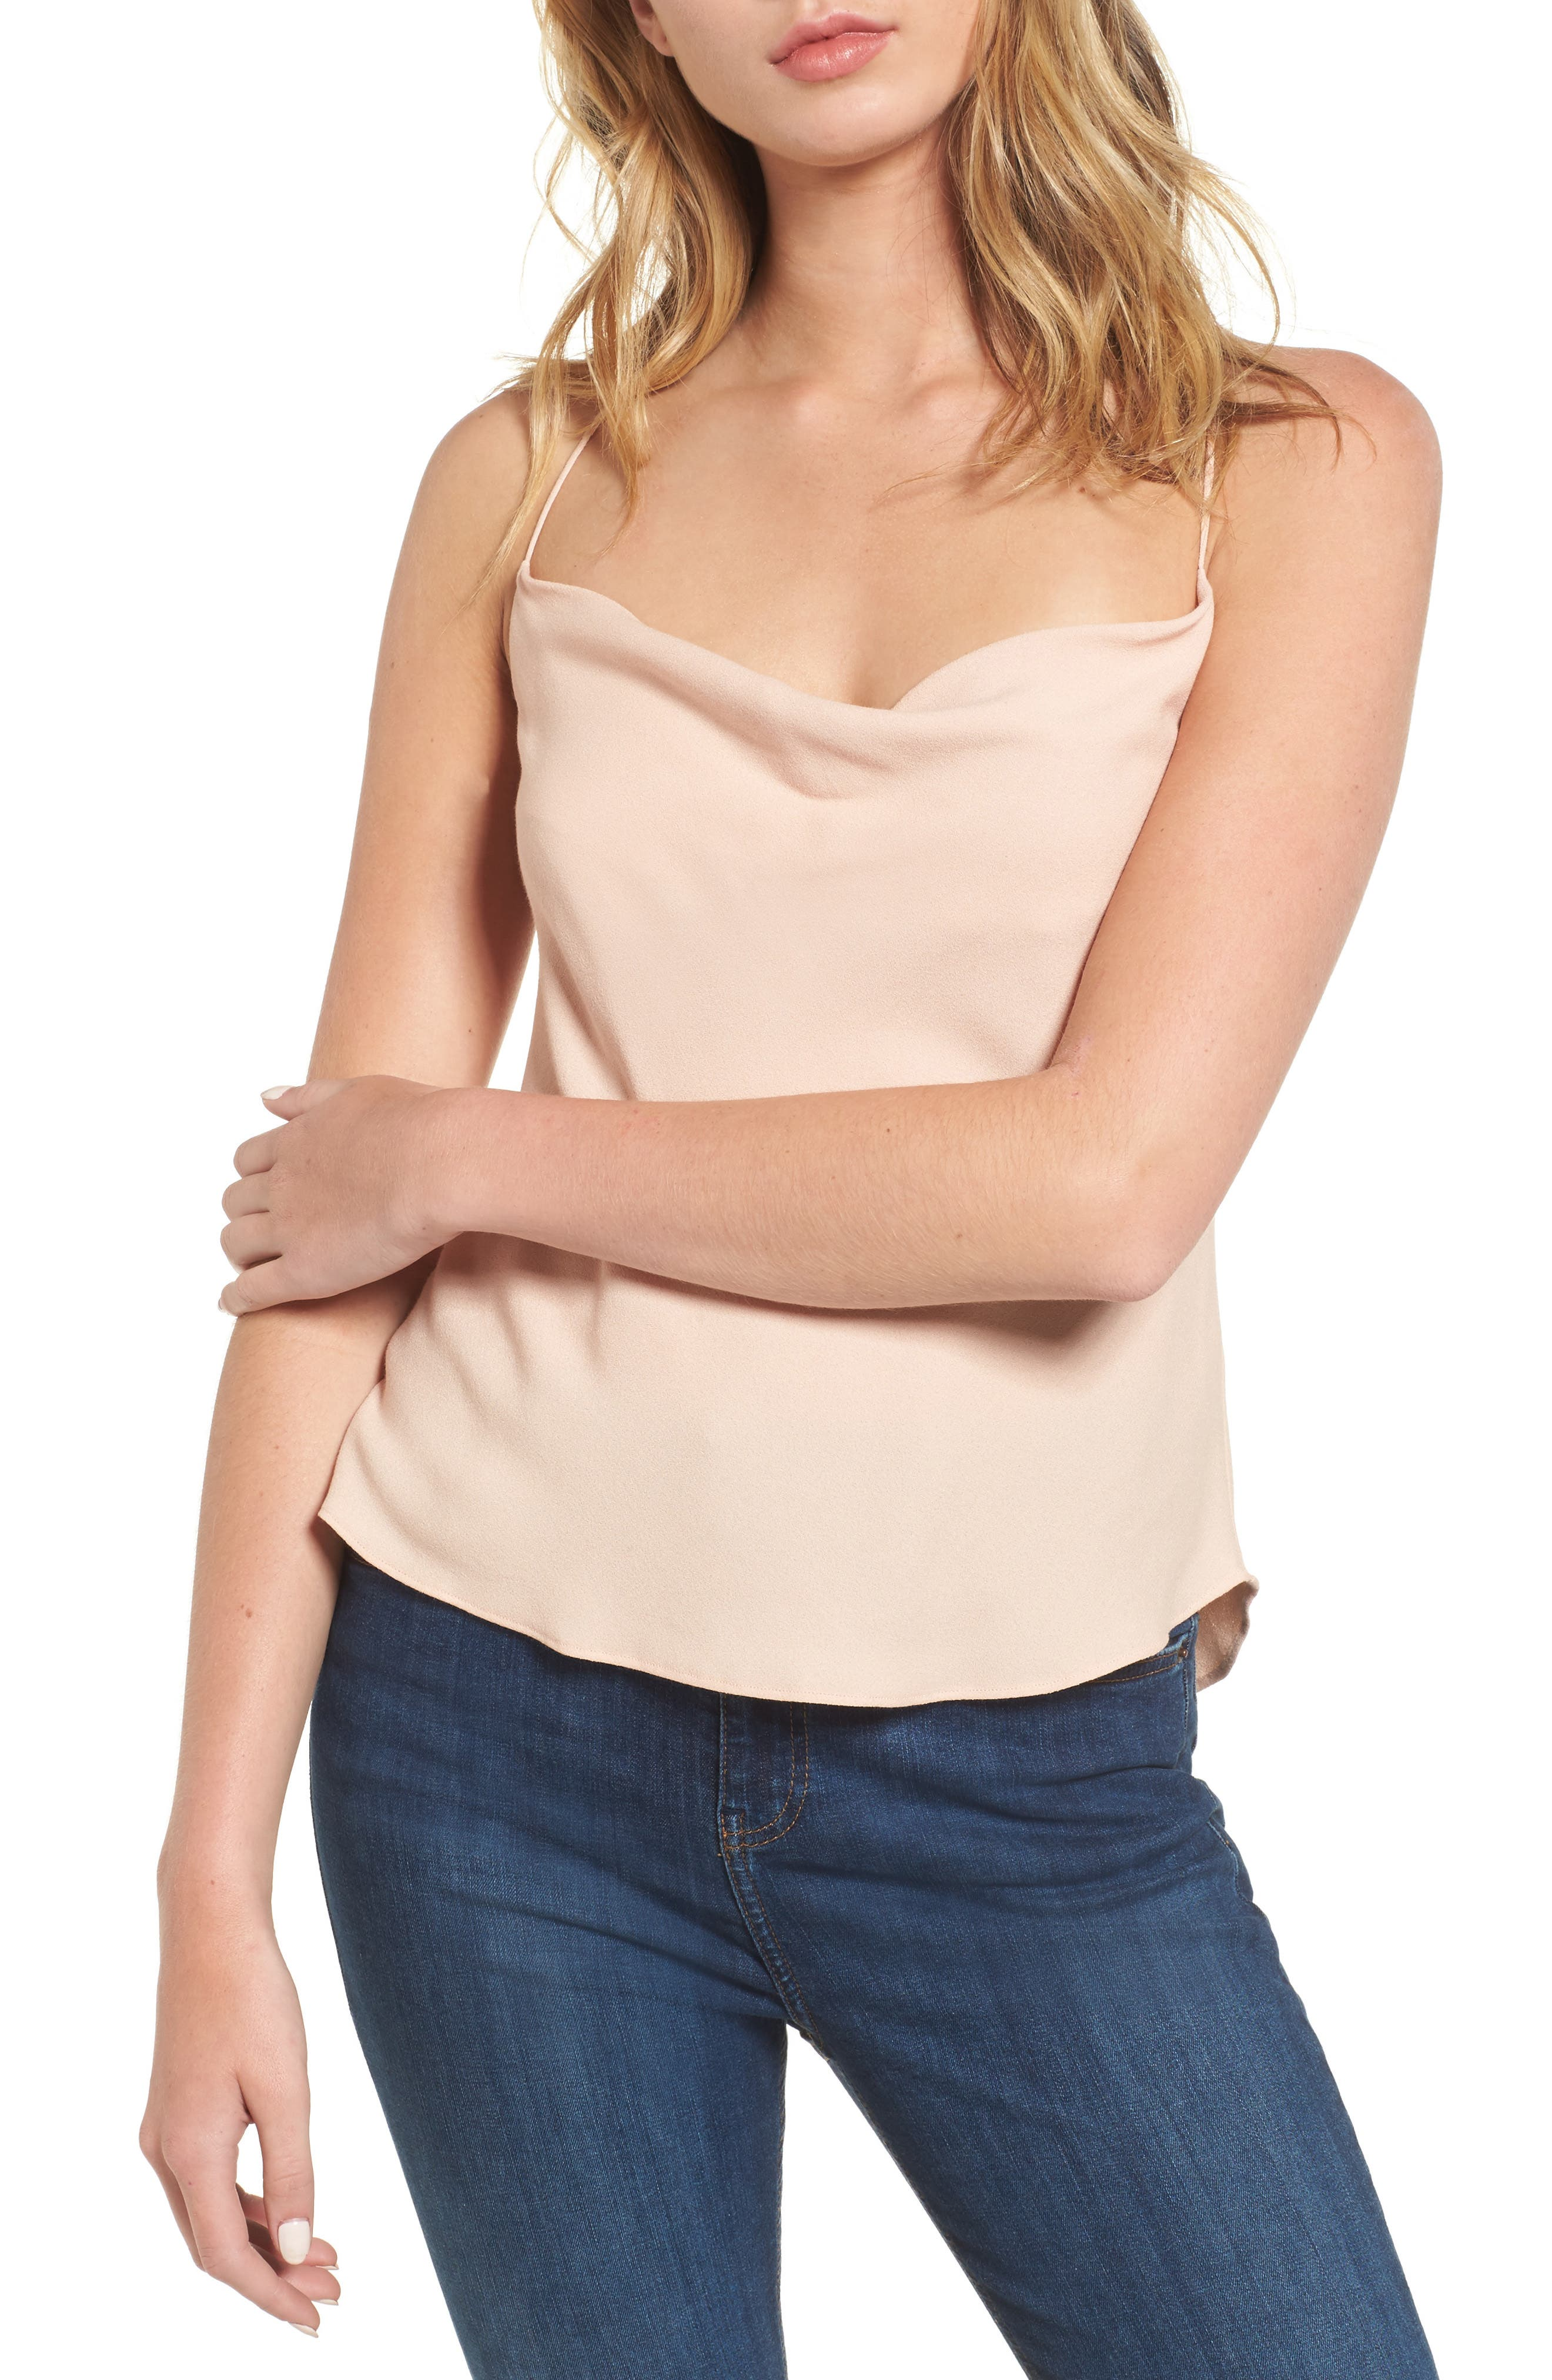 Alternate Image 1 Selected - AFRM Finn T-Back Camisole